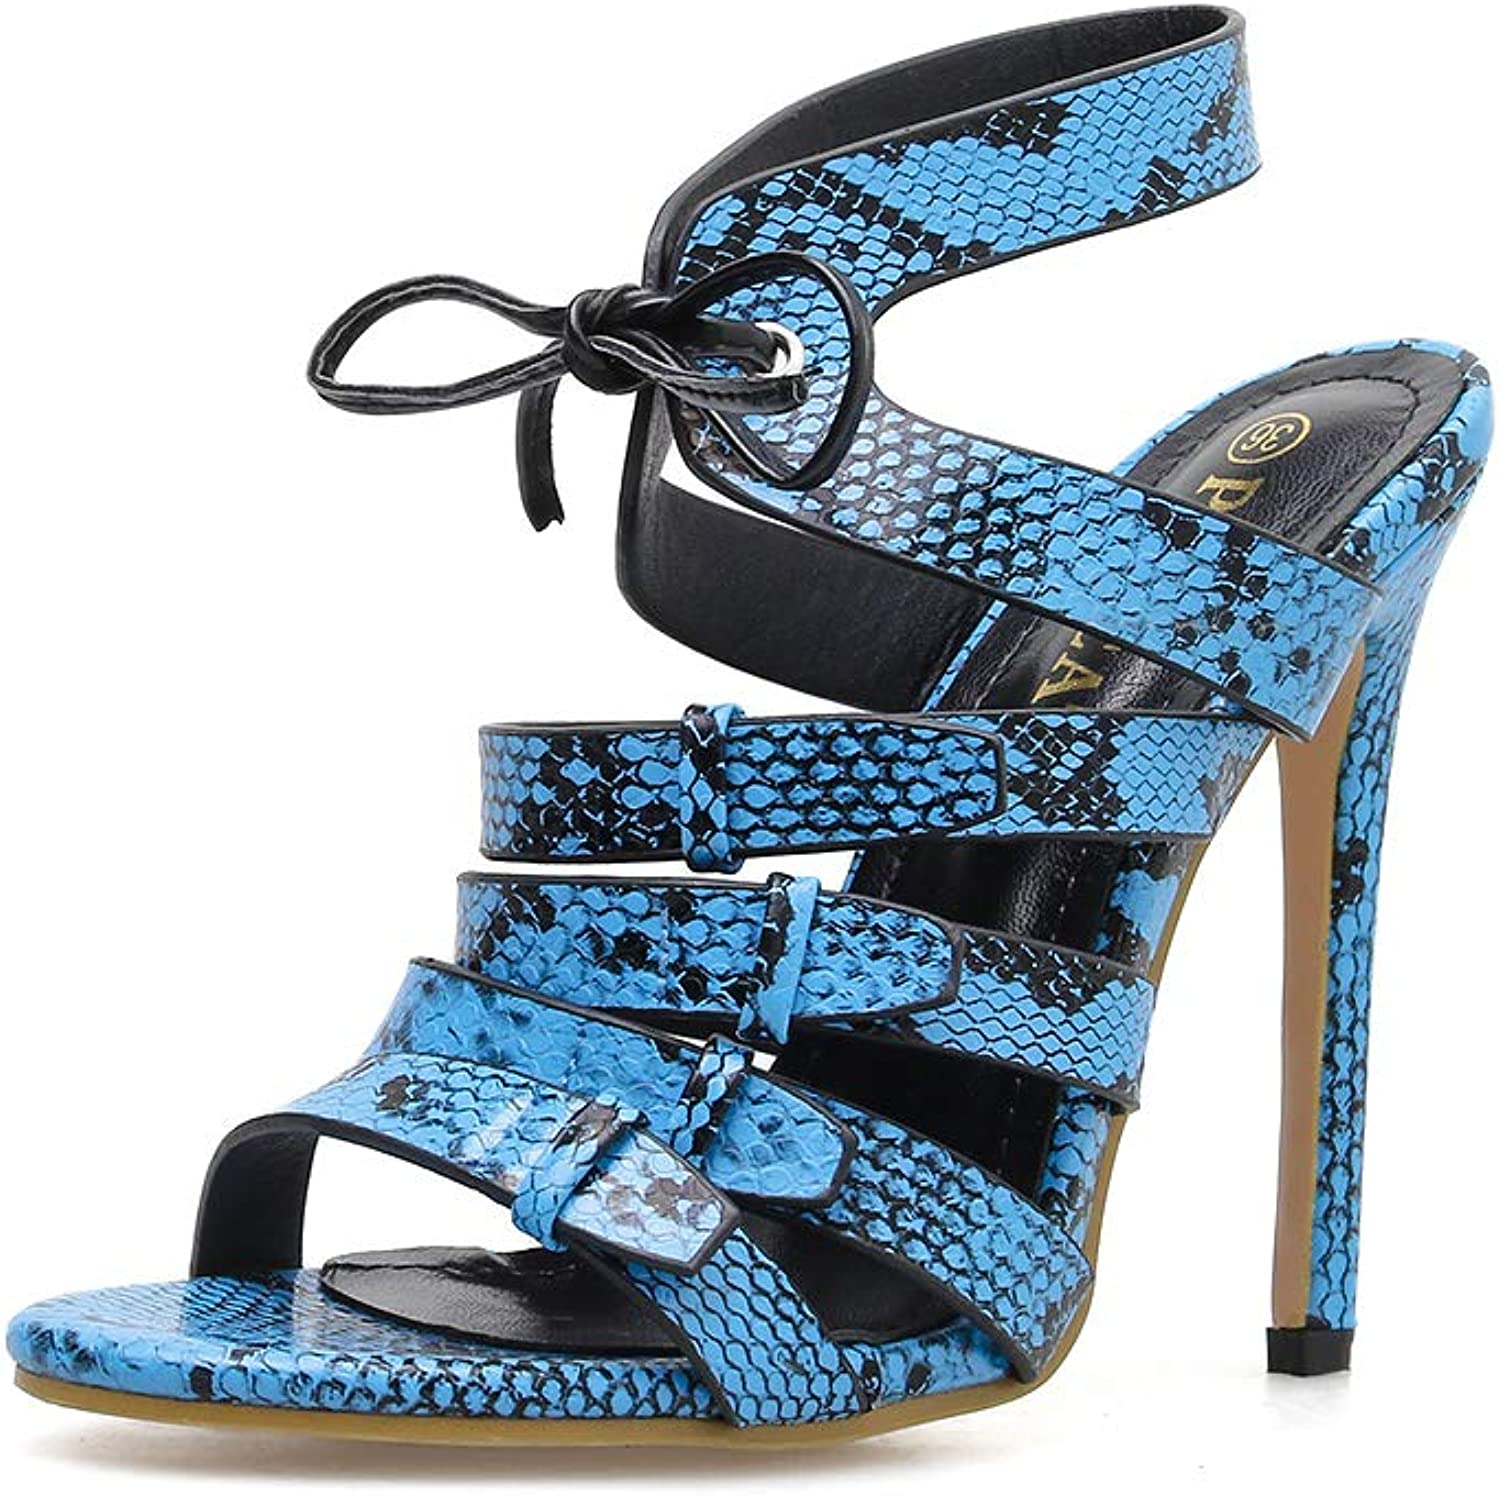 Women's Sandals - Lace-up Serpentine Sexy Open Toe shoes